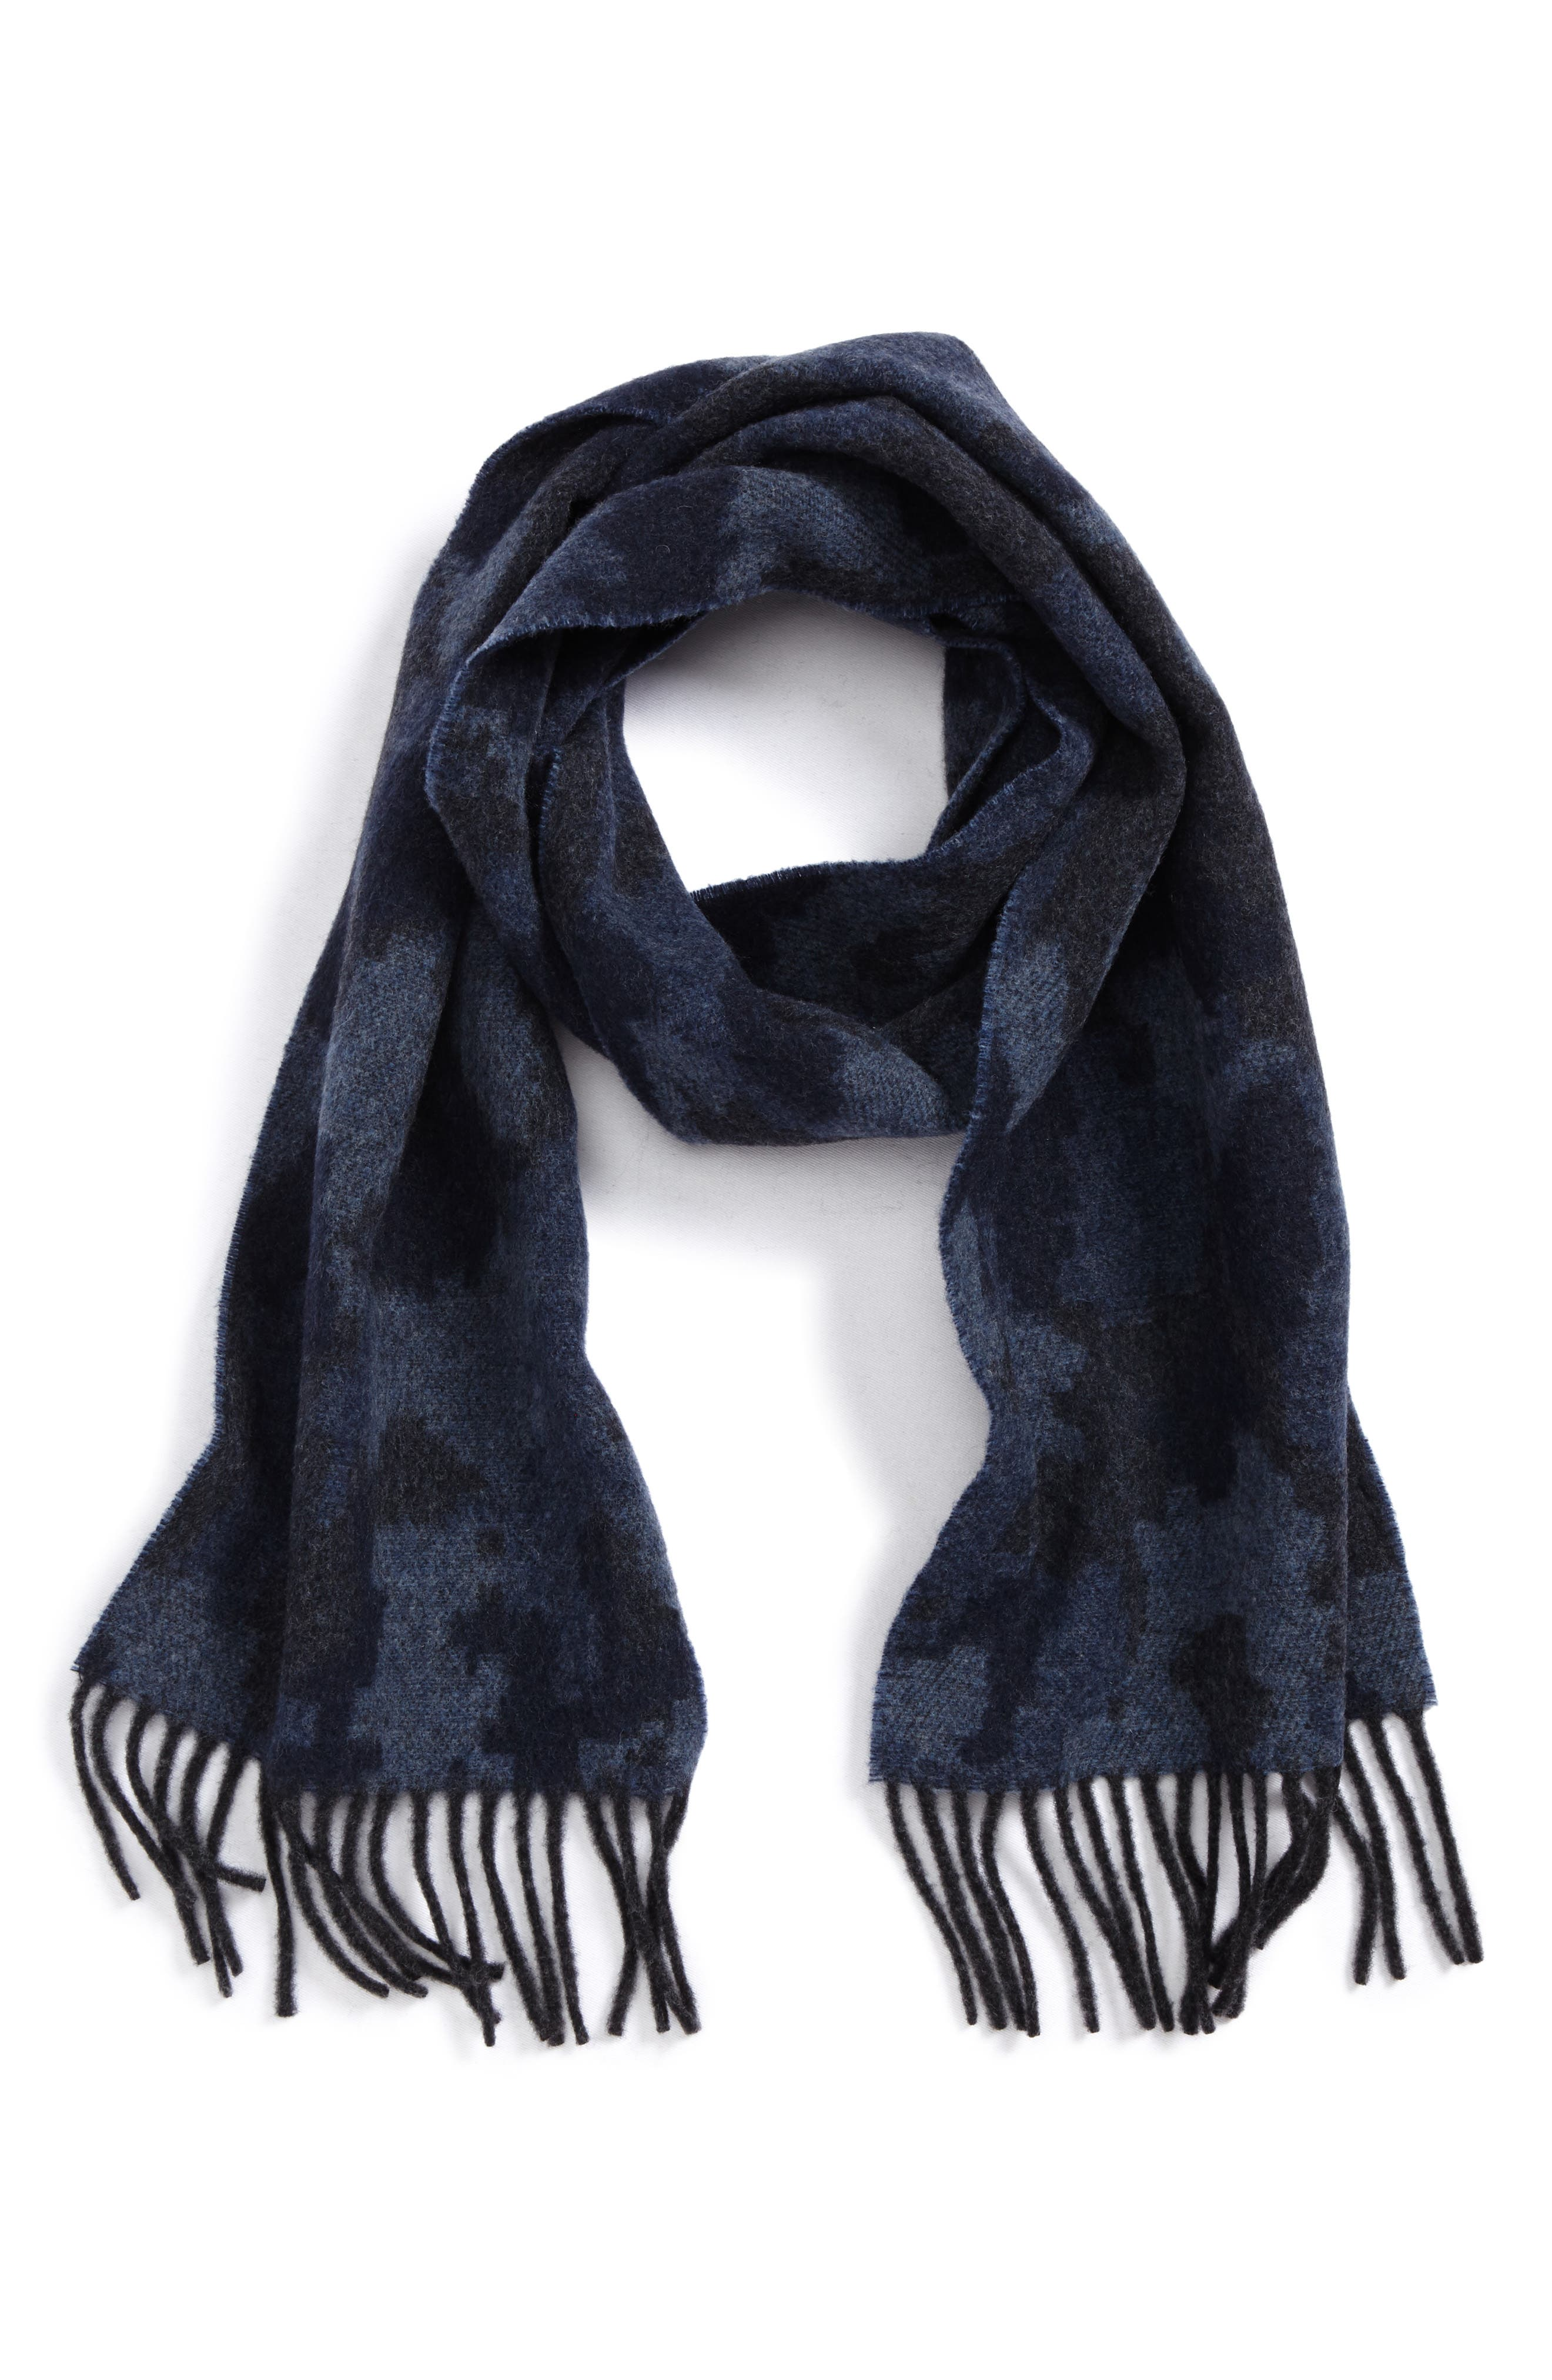 Jacquard Camo Wool & Cashmere Scarf,                         Main,                         color, Navy